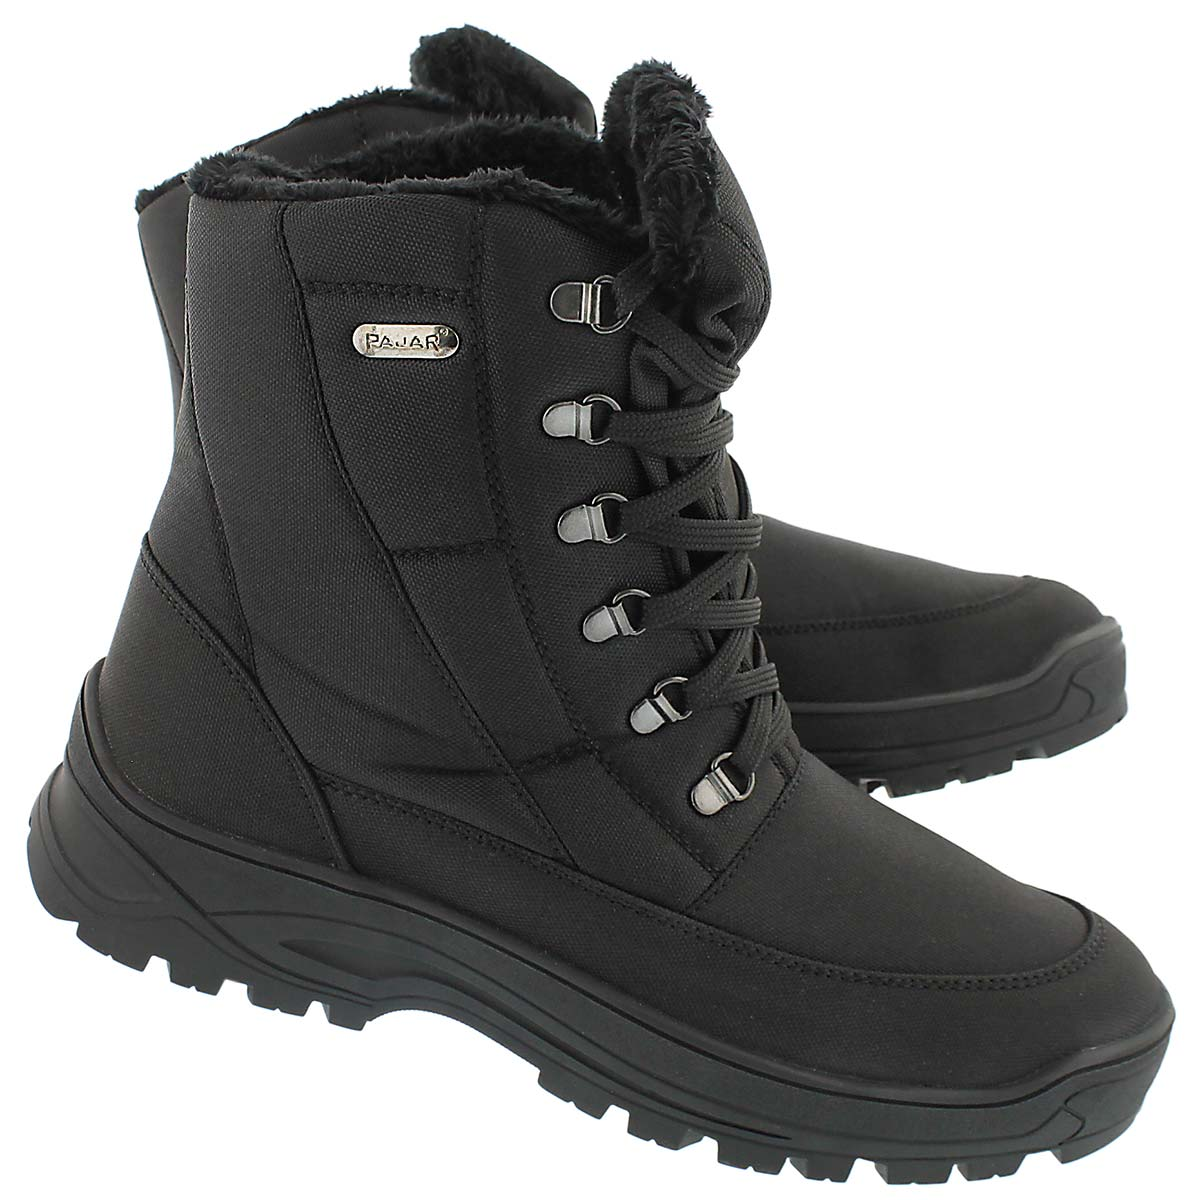 Mns Eric black lace up wtpf wntr boot